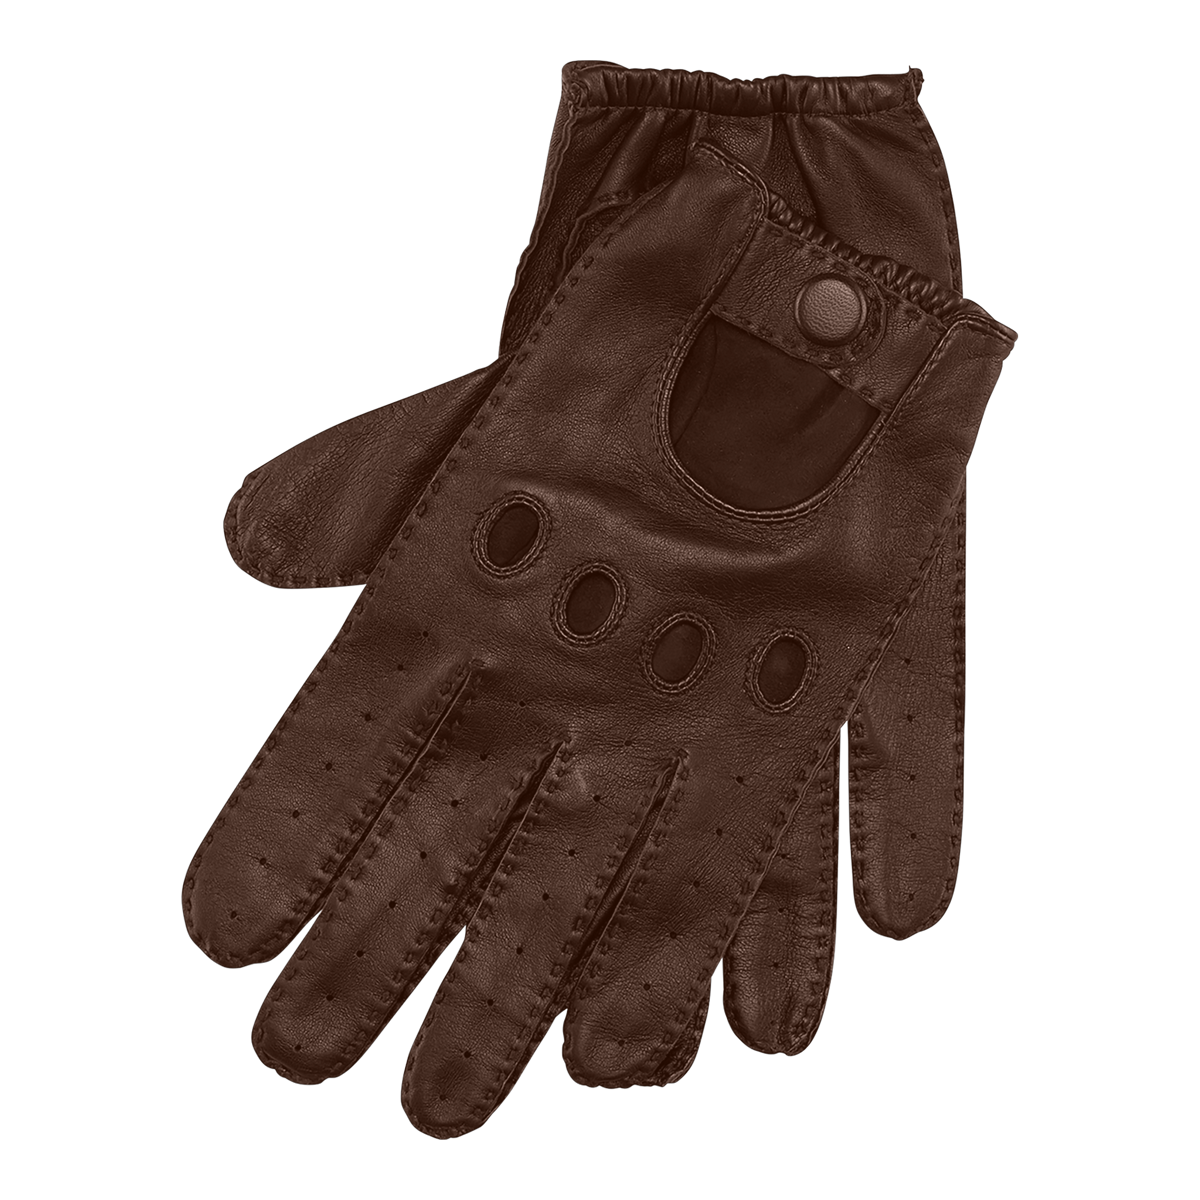 788c5be67868 Men's Classic Leather Driving & Motorcycle Gloves | Polo Ralph Lauren